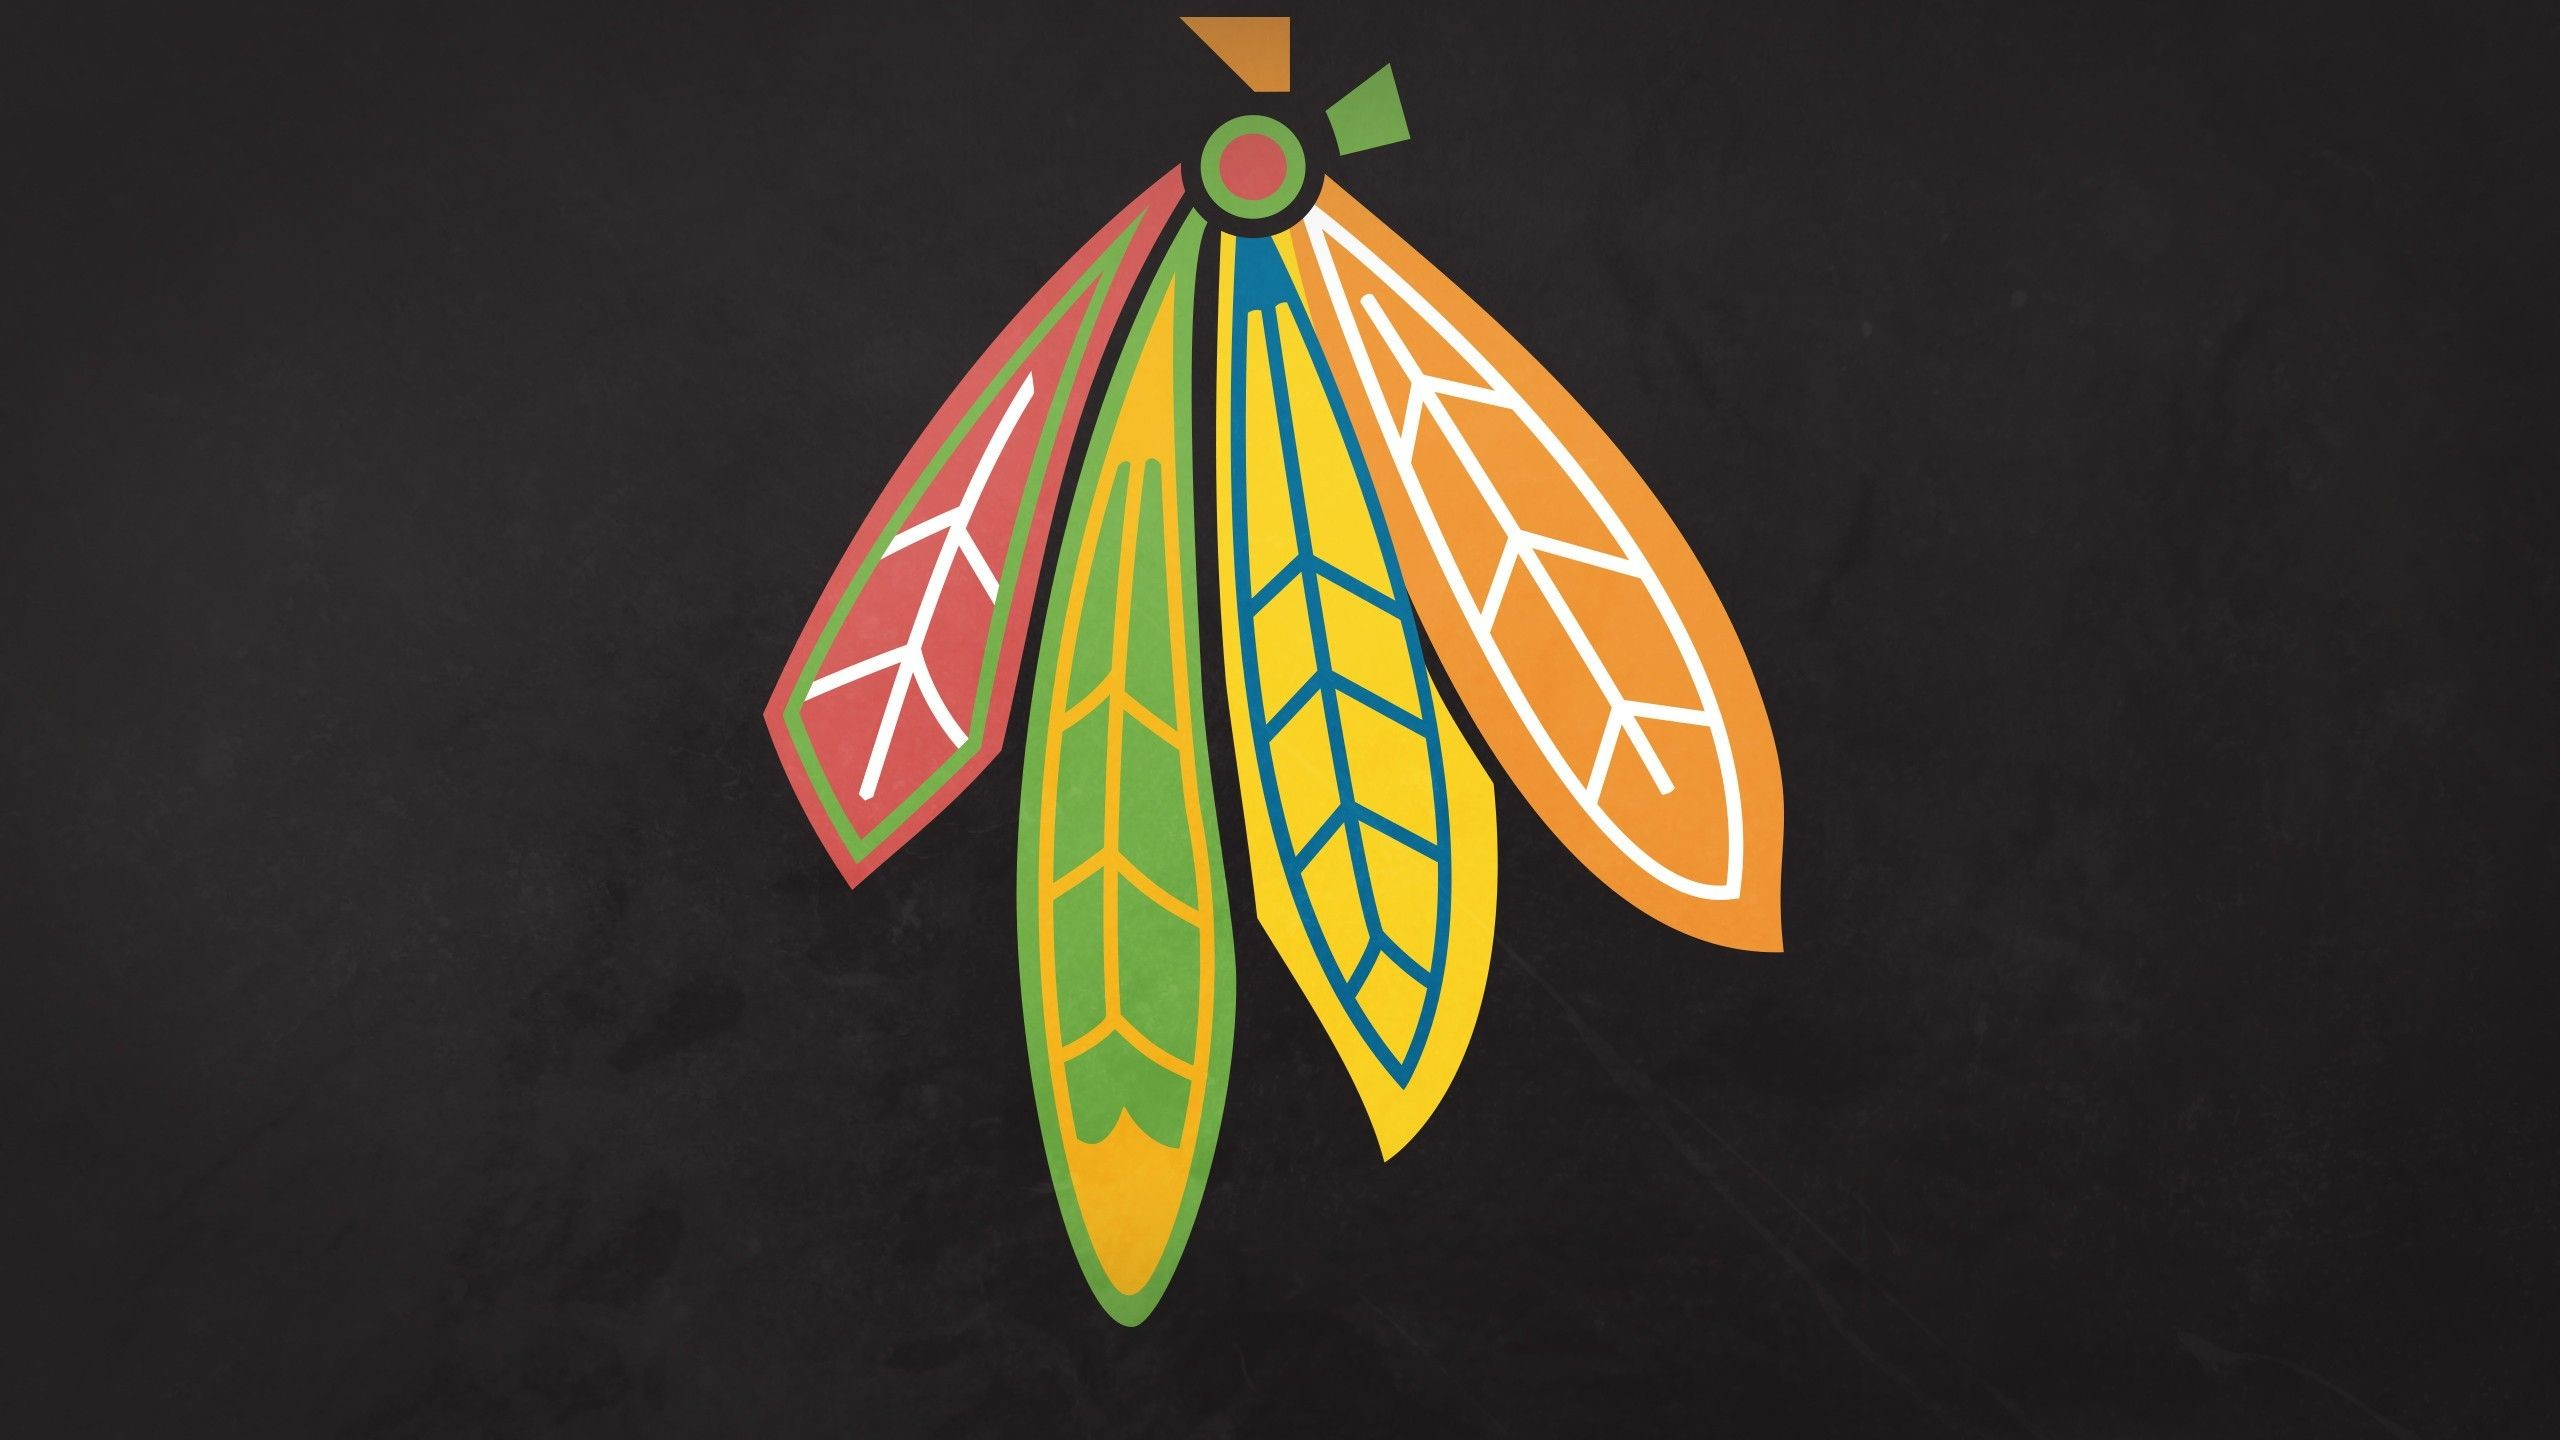 2560x1440 CHICAGO BLACKHAWKS nhl hockey wallpaper 2560×1440 Chicago Blackhawks  Wallpaper (37 Wallpapers) |